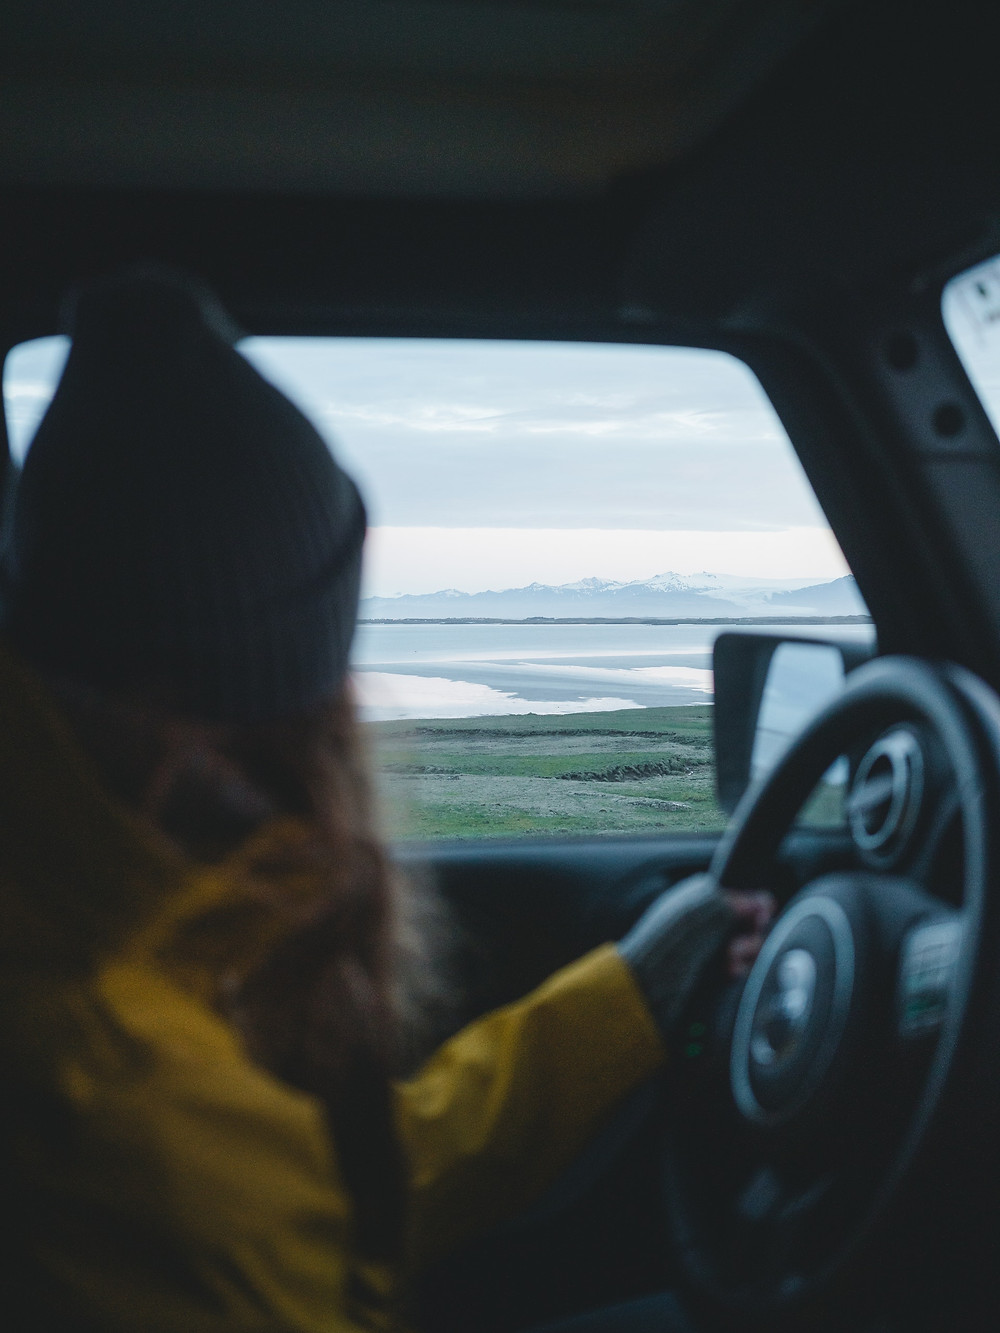 A woman viewing a beautiful green landscape while driving. Matt Hardy pexels image.